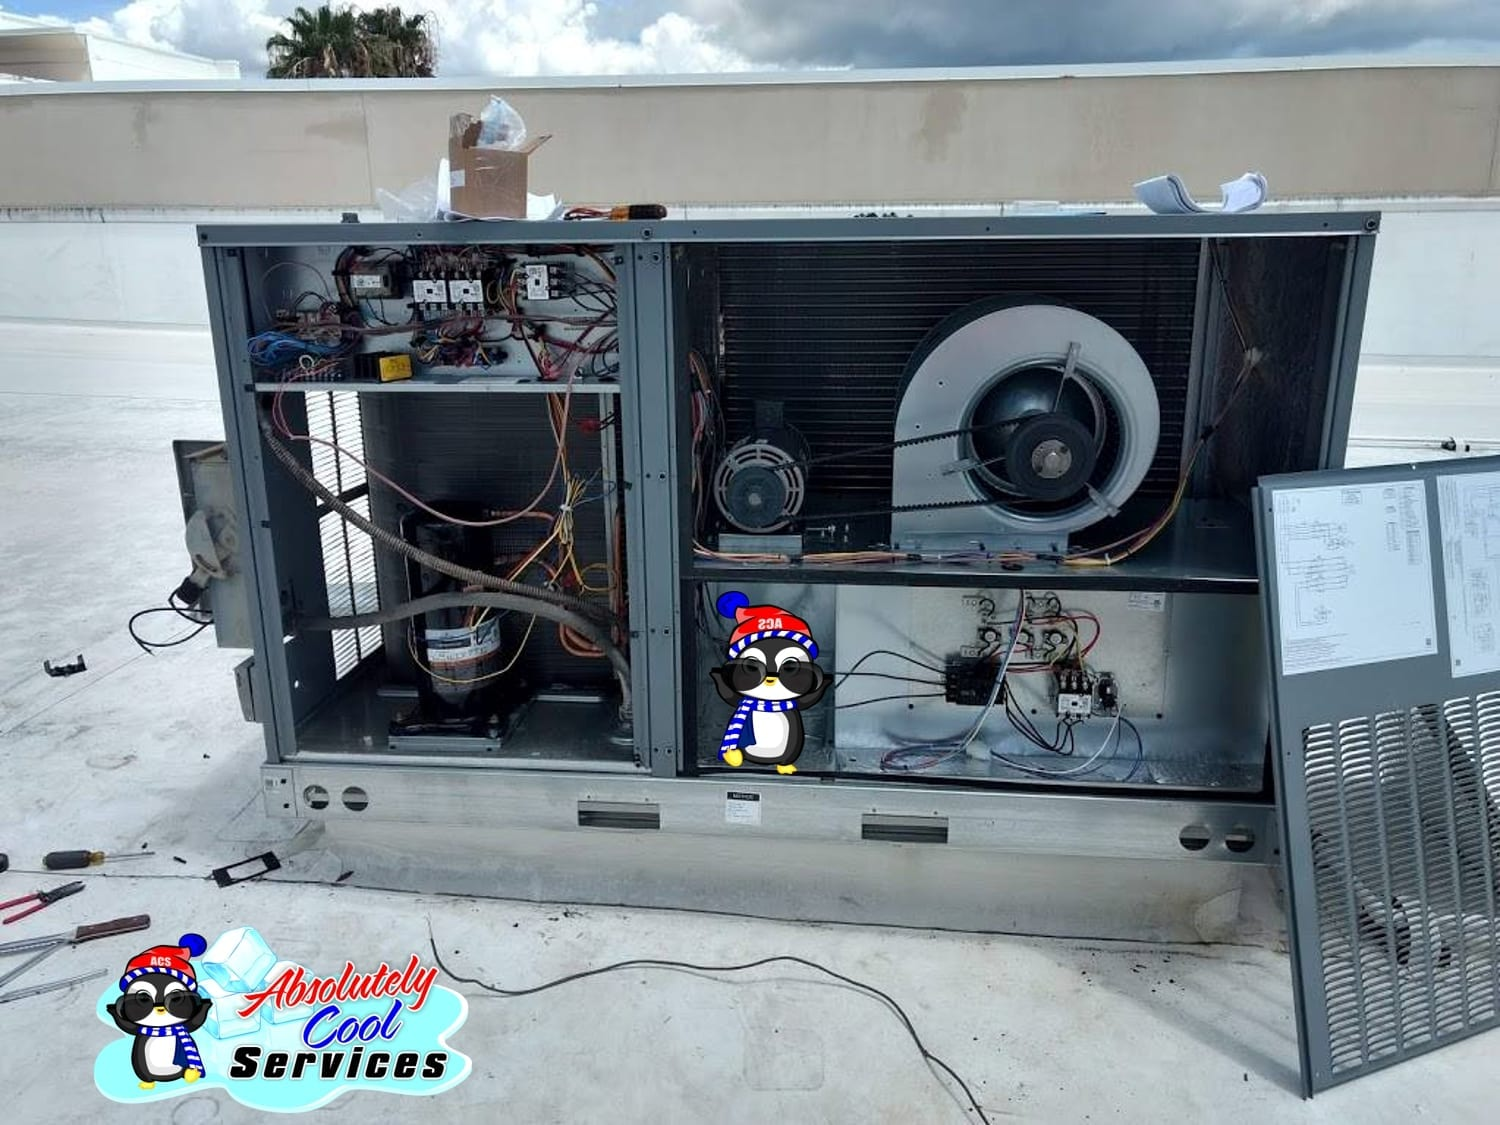 Roof Air Conditioning | Emergency Air Conditioning Duct Work Company near Delray Beach